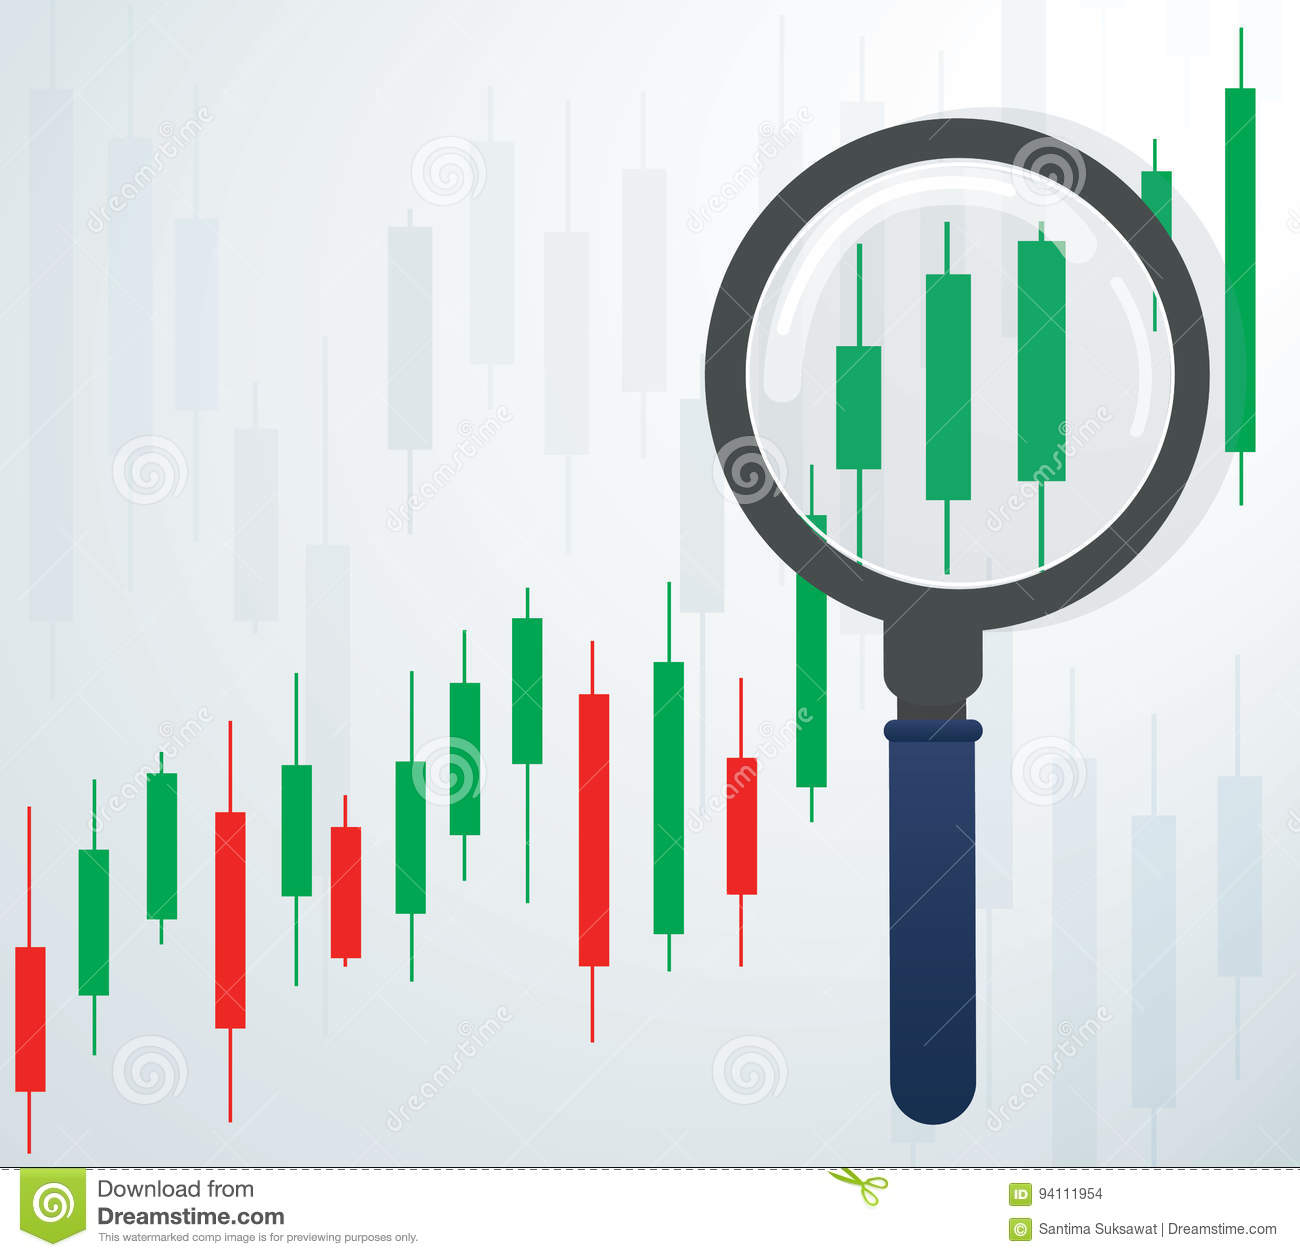 The Magnifying Glass And Candlestick Chart Stock Market